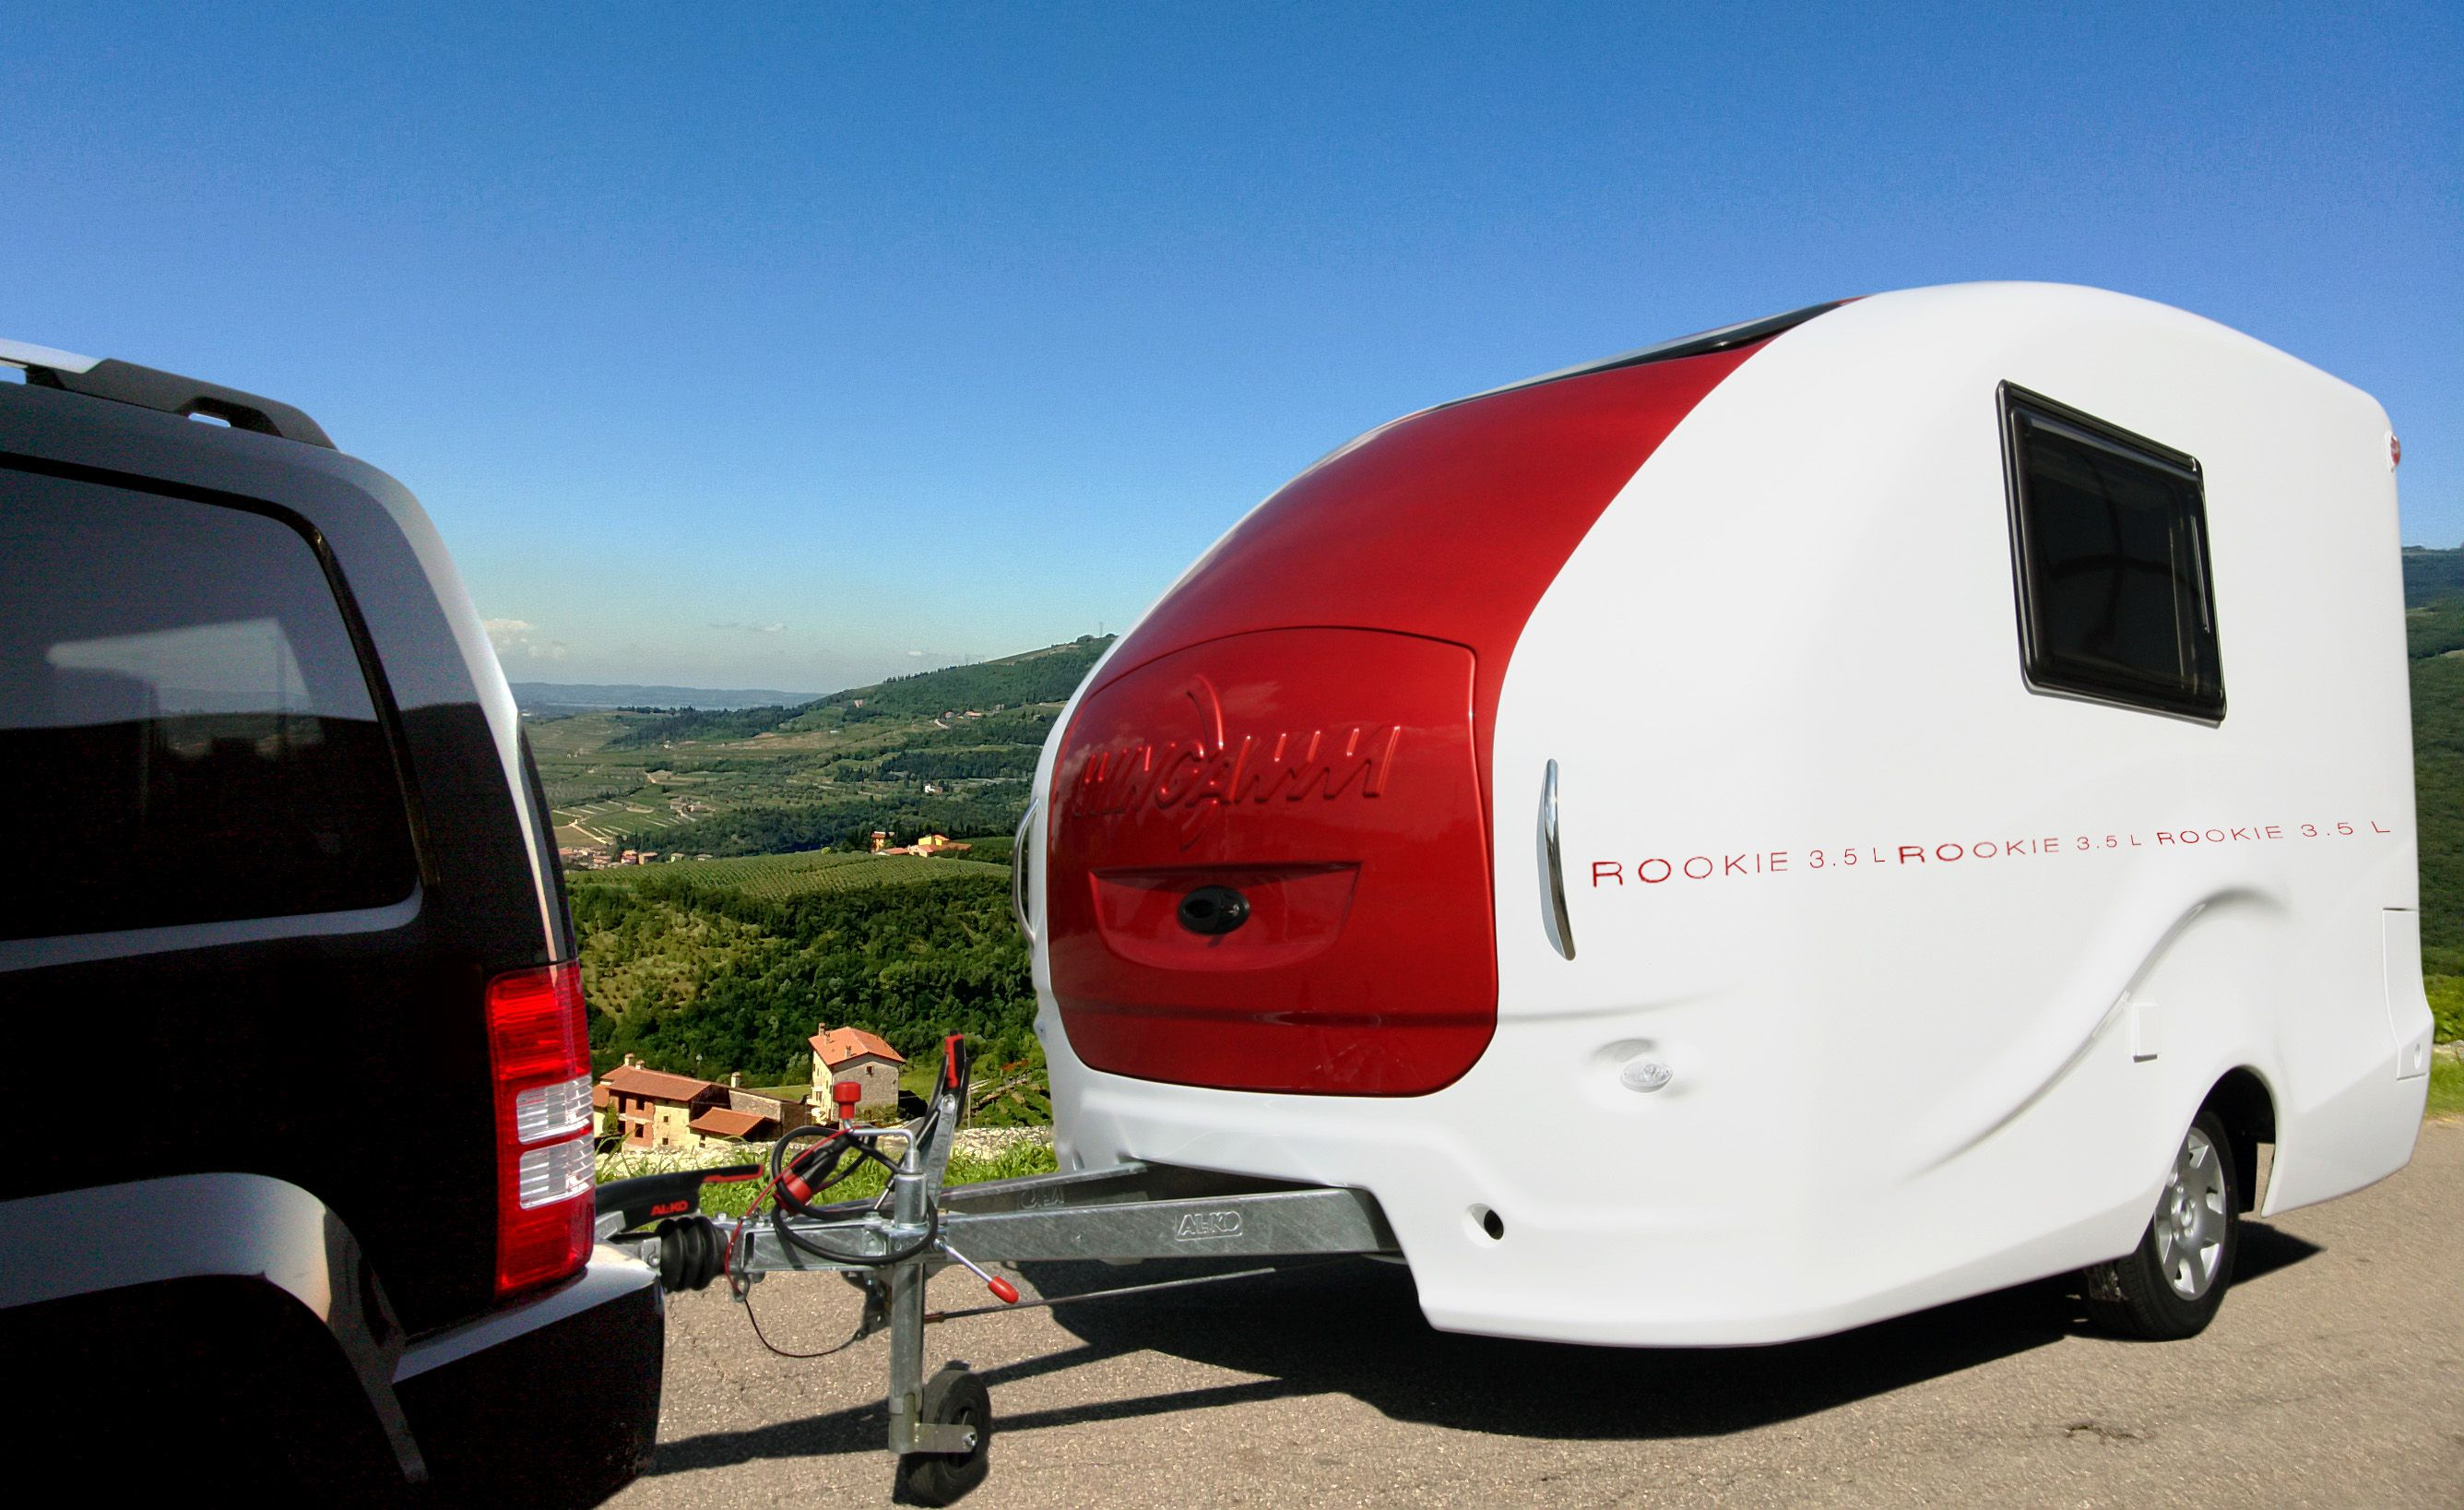 Wingamm Rookie 35 the stylish lightweight caravan with a weight